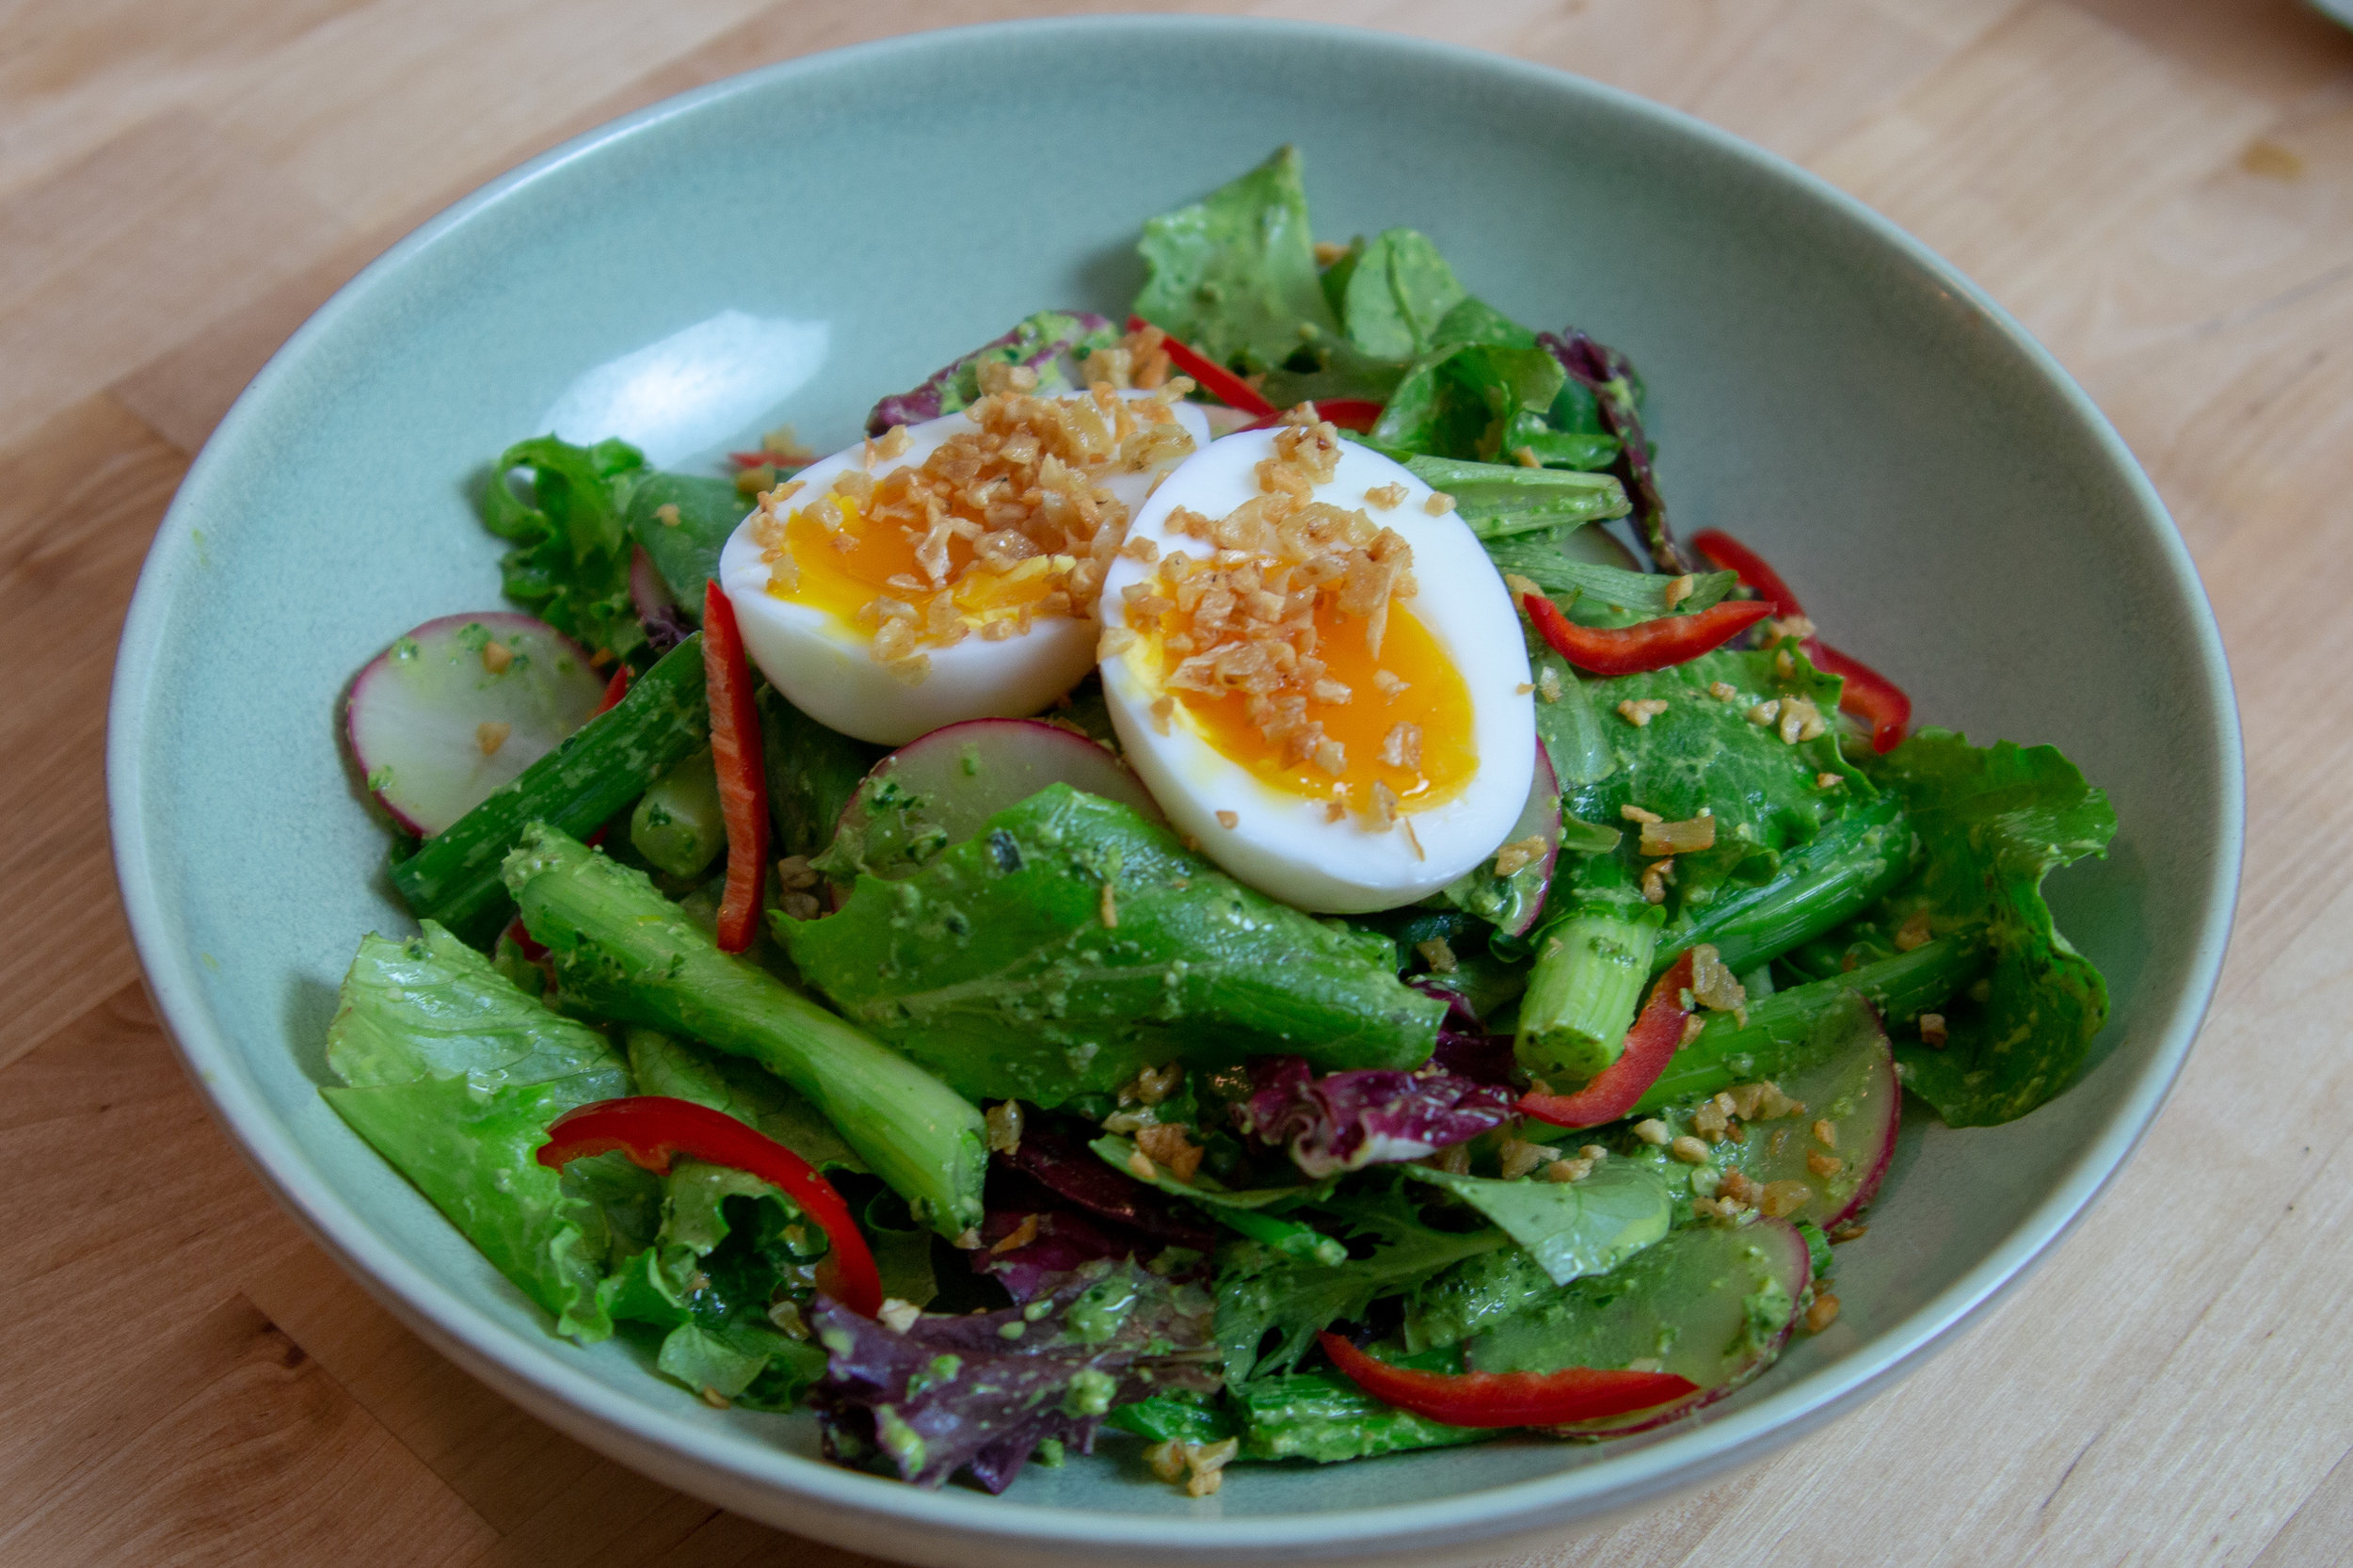 VIDEO:  Warm snap pea salad with spinach walnut pesto and a 7 minute egg